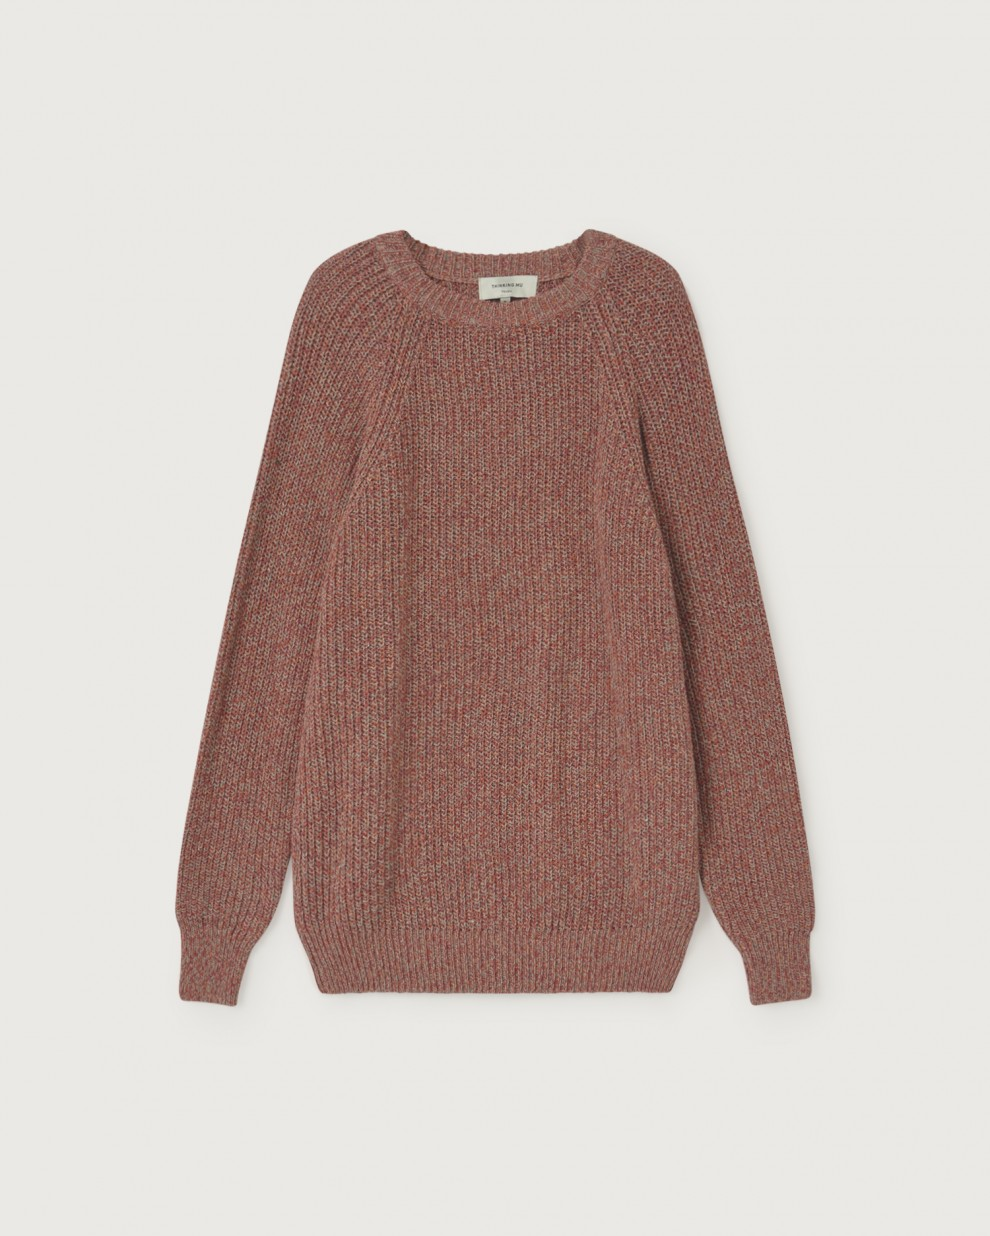 TEJA TRASH KNITTED SWEATER